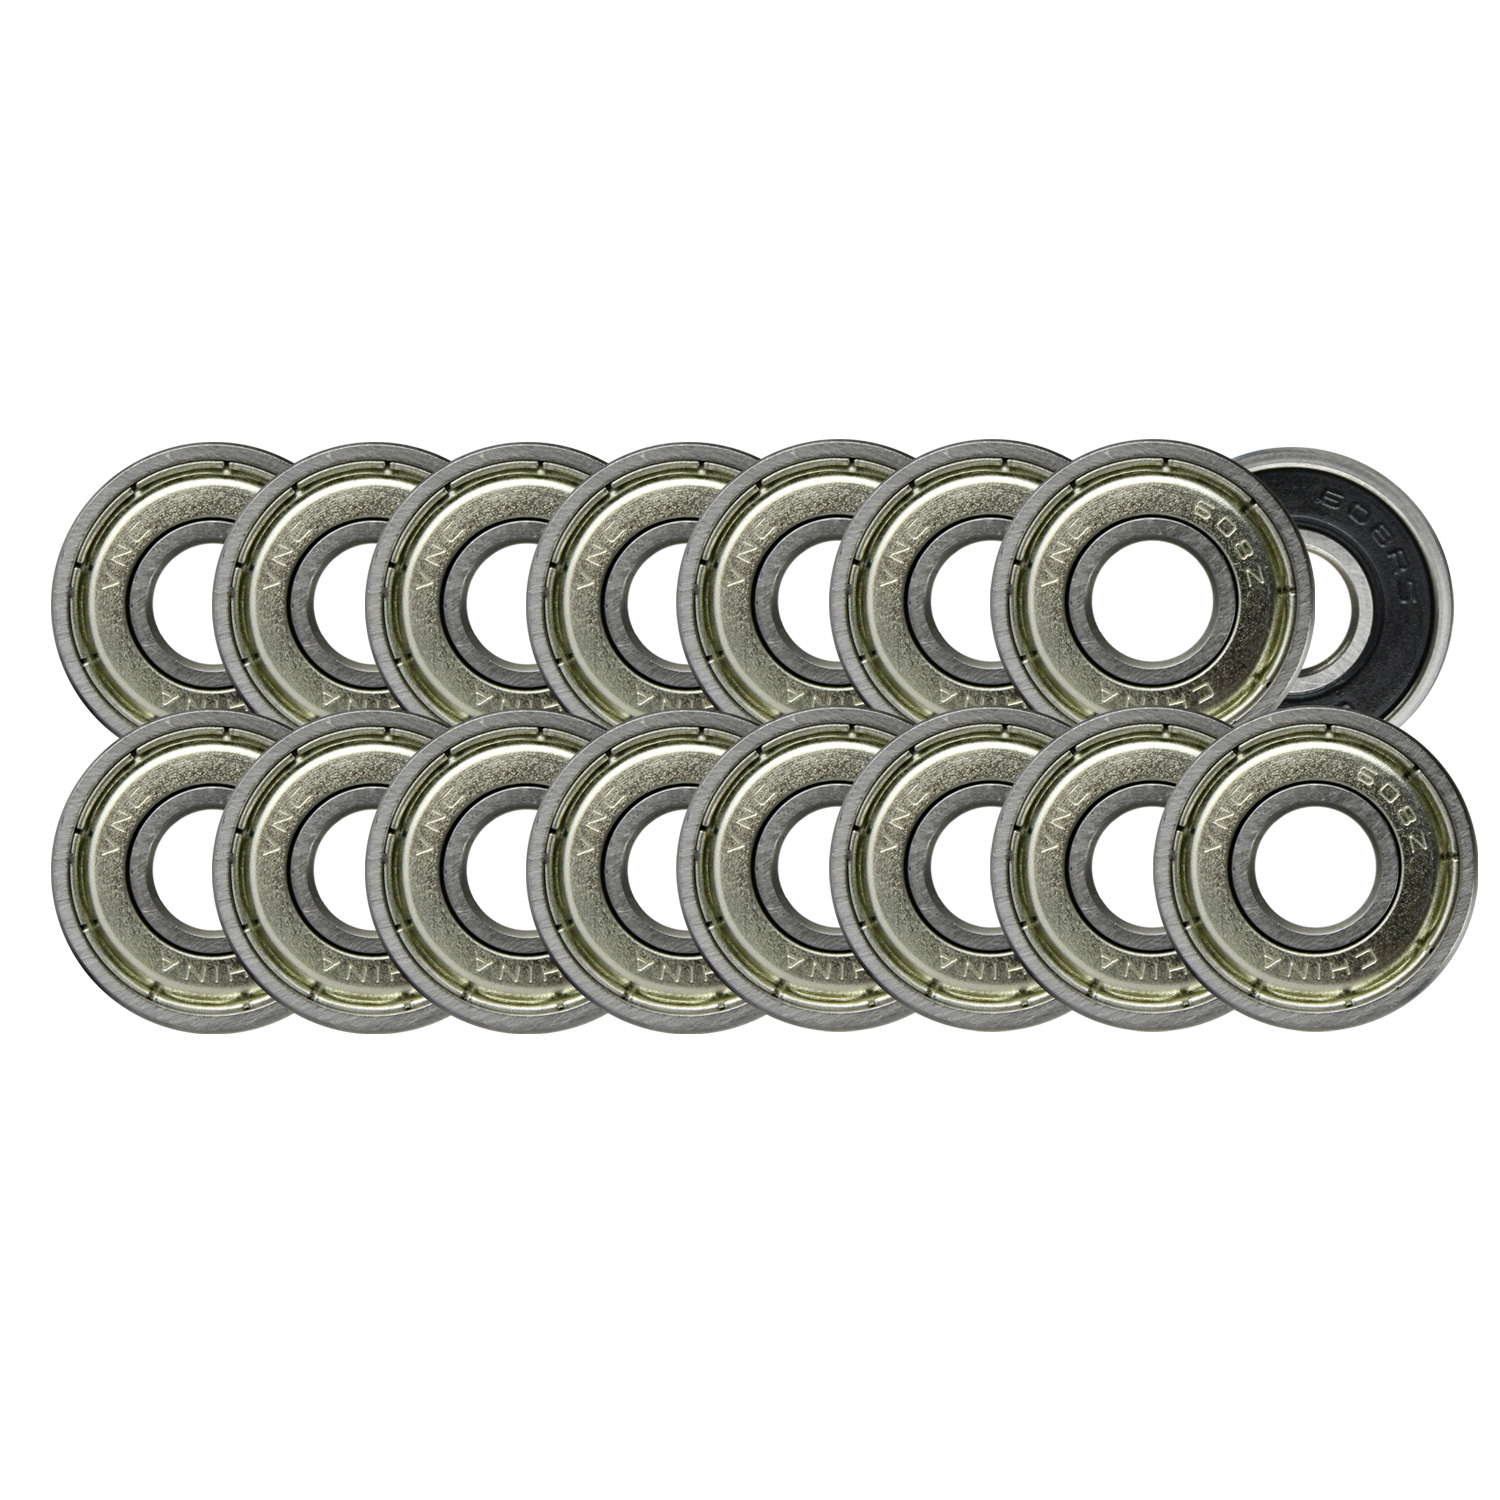 608ZZ Precision Skateboard Bearings 8x22x7mm Double Shielded Silver (Pack of 20)